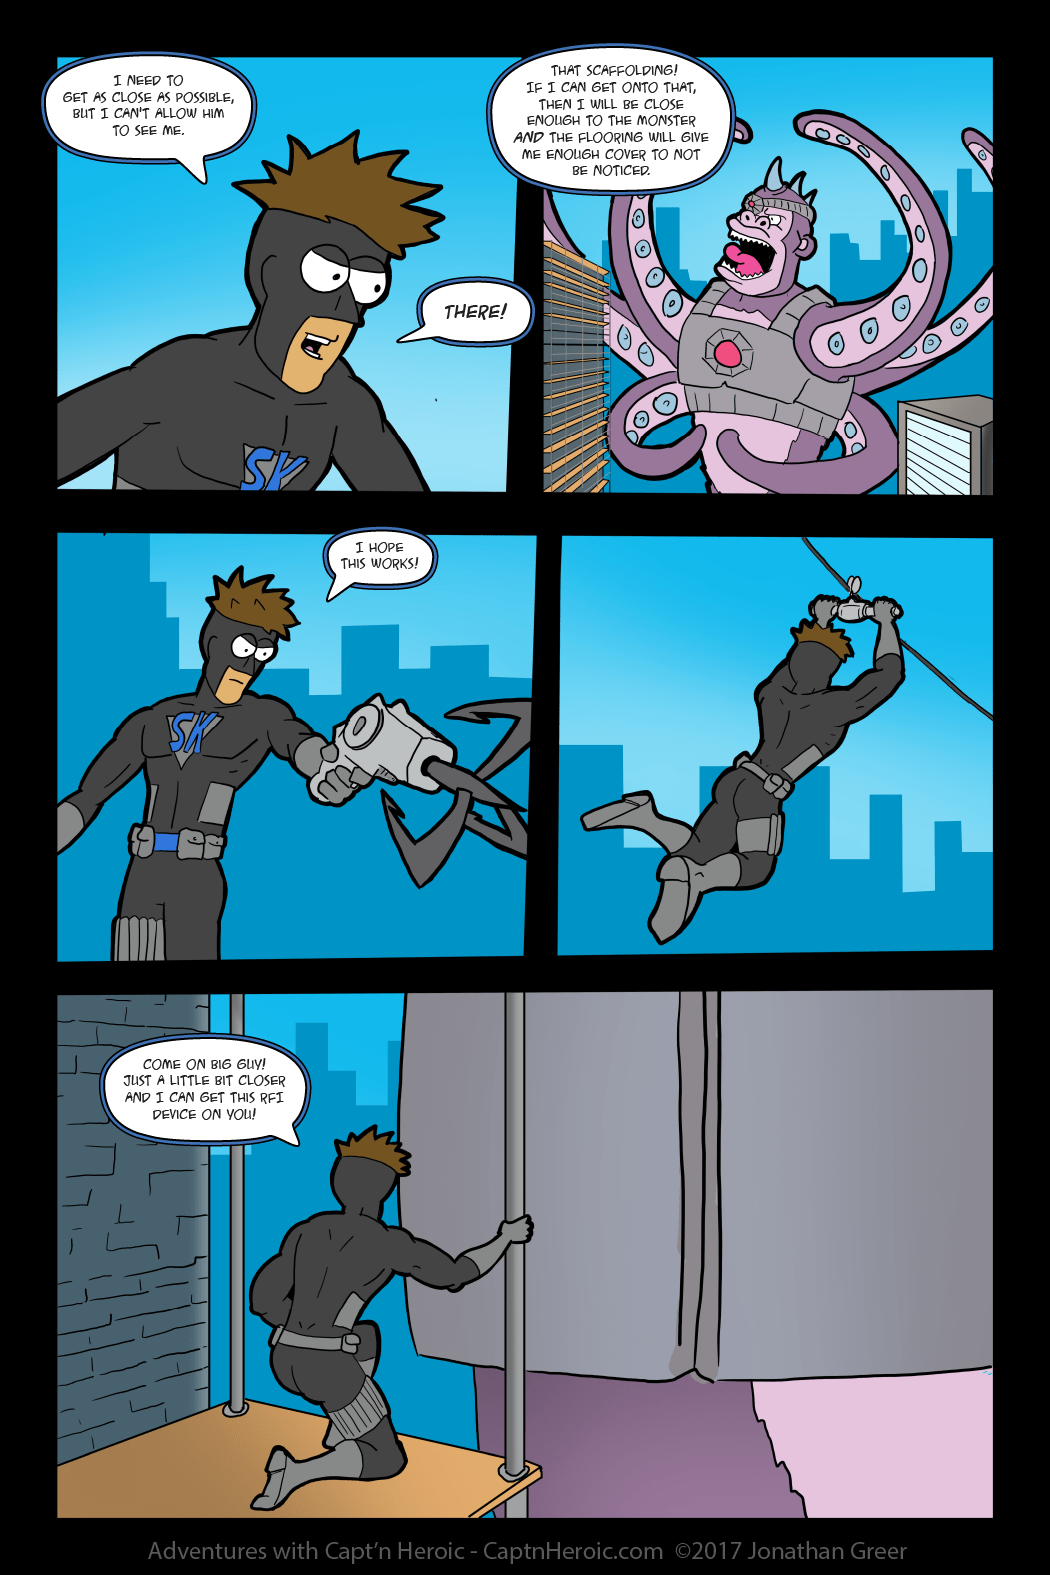 Adventures with Capt'n Heroic: In the Beginning- Page 49 The Silent Knight is Jumping into Action